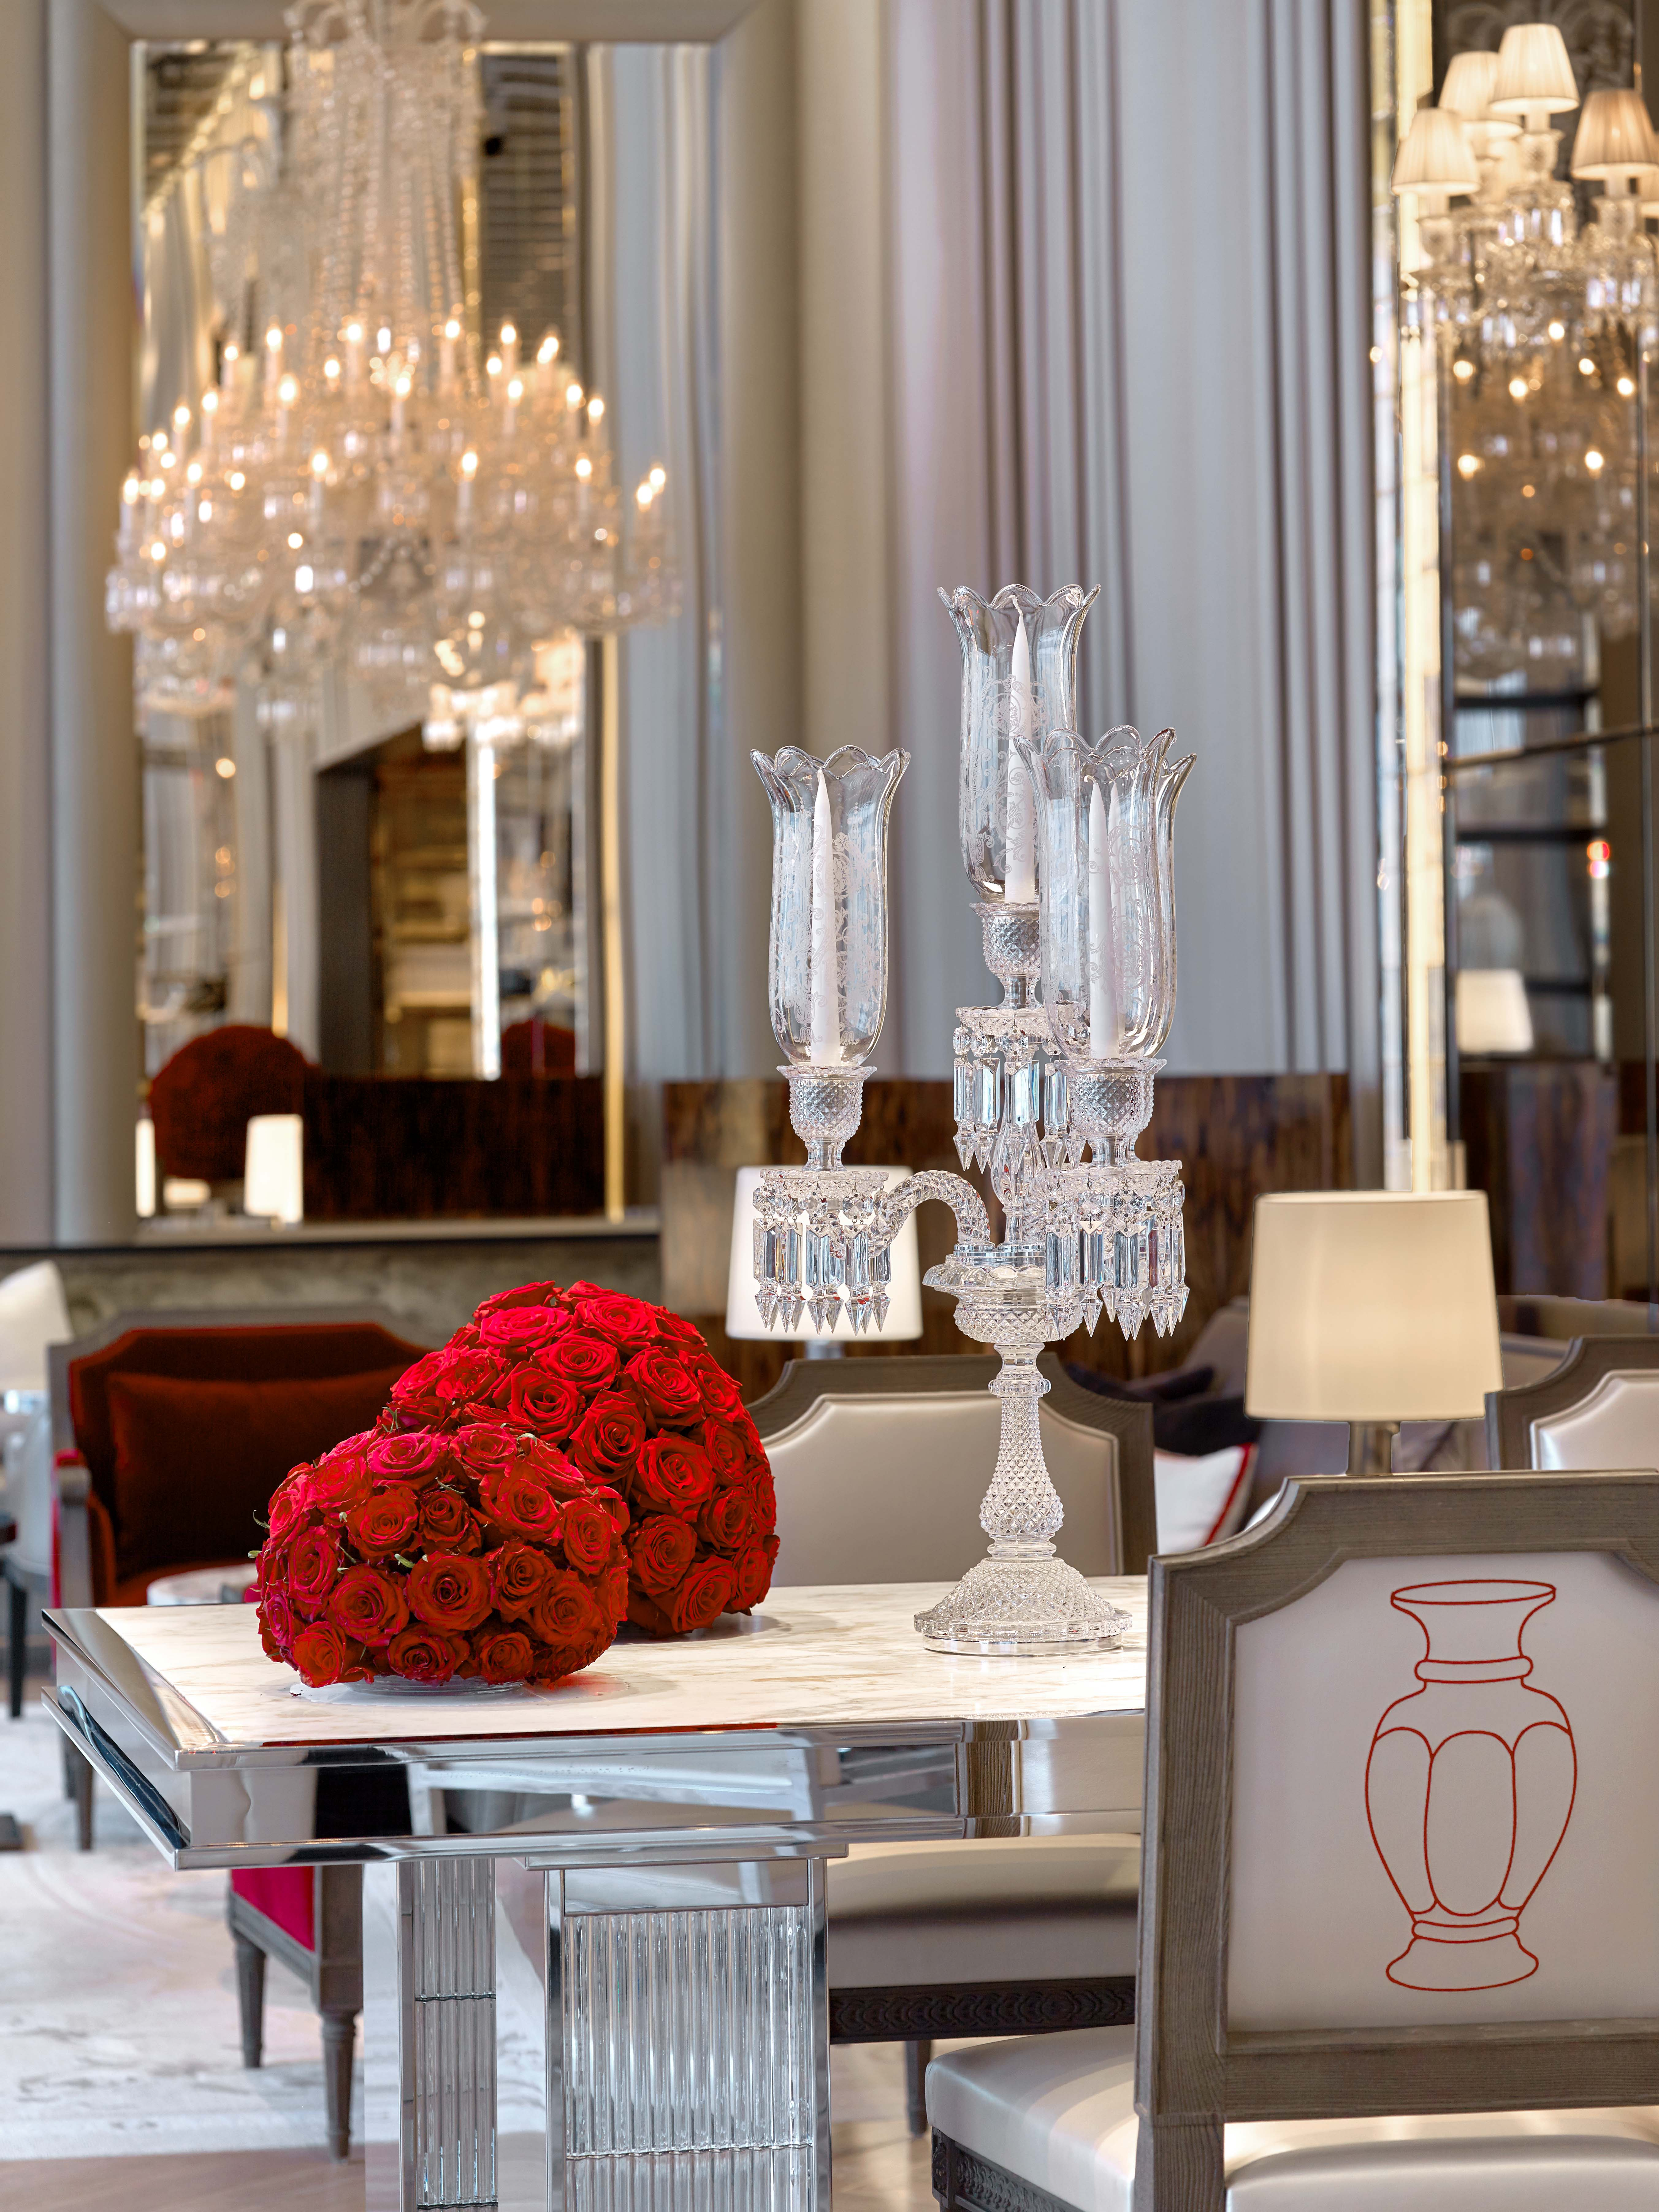 Grand Salon baccarat hotel new york